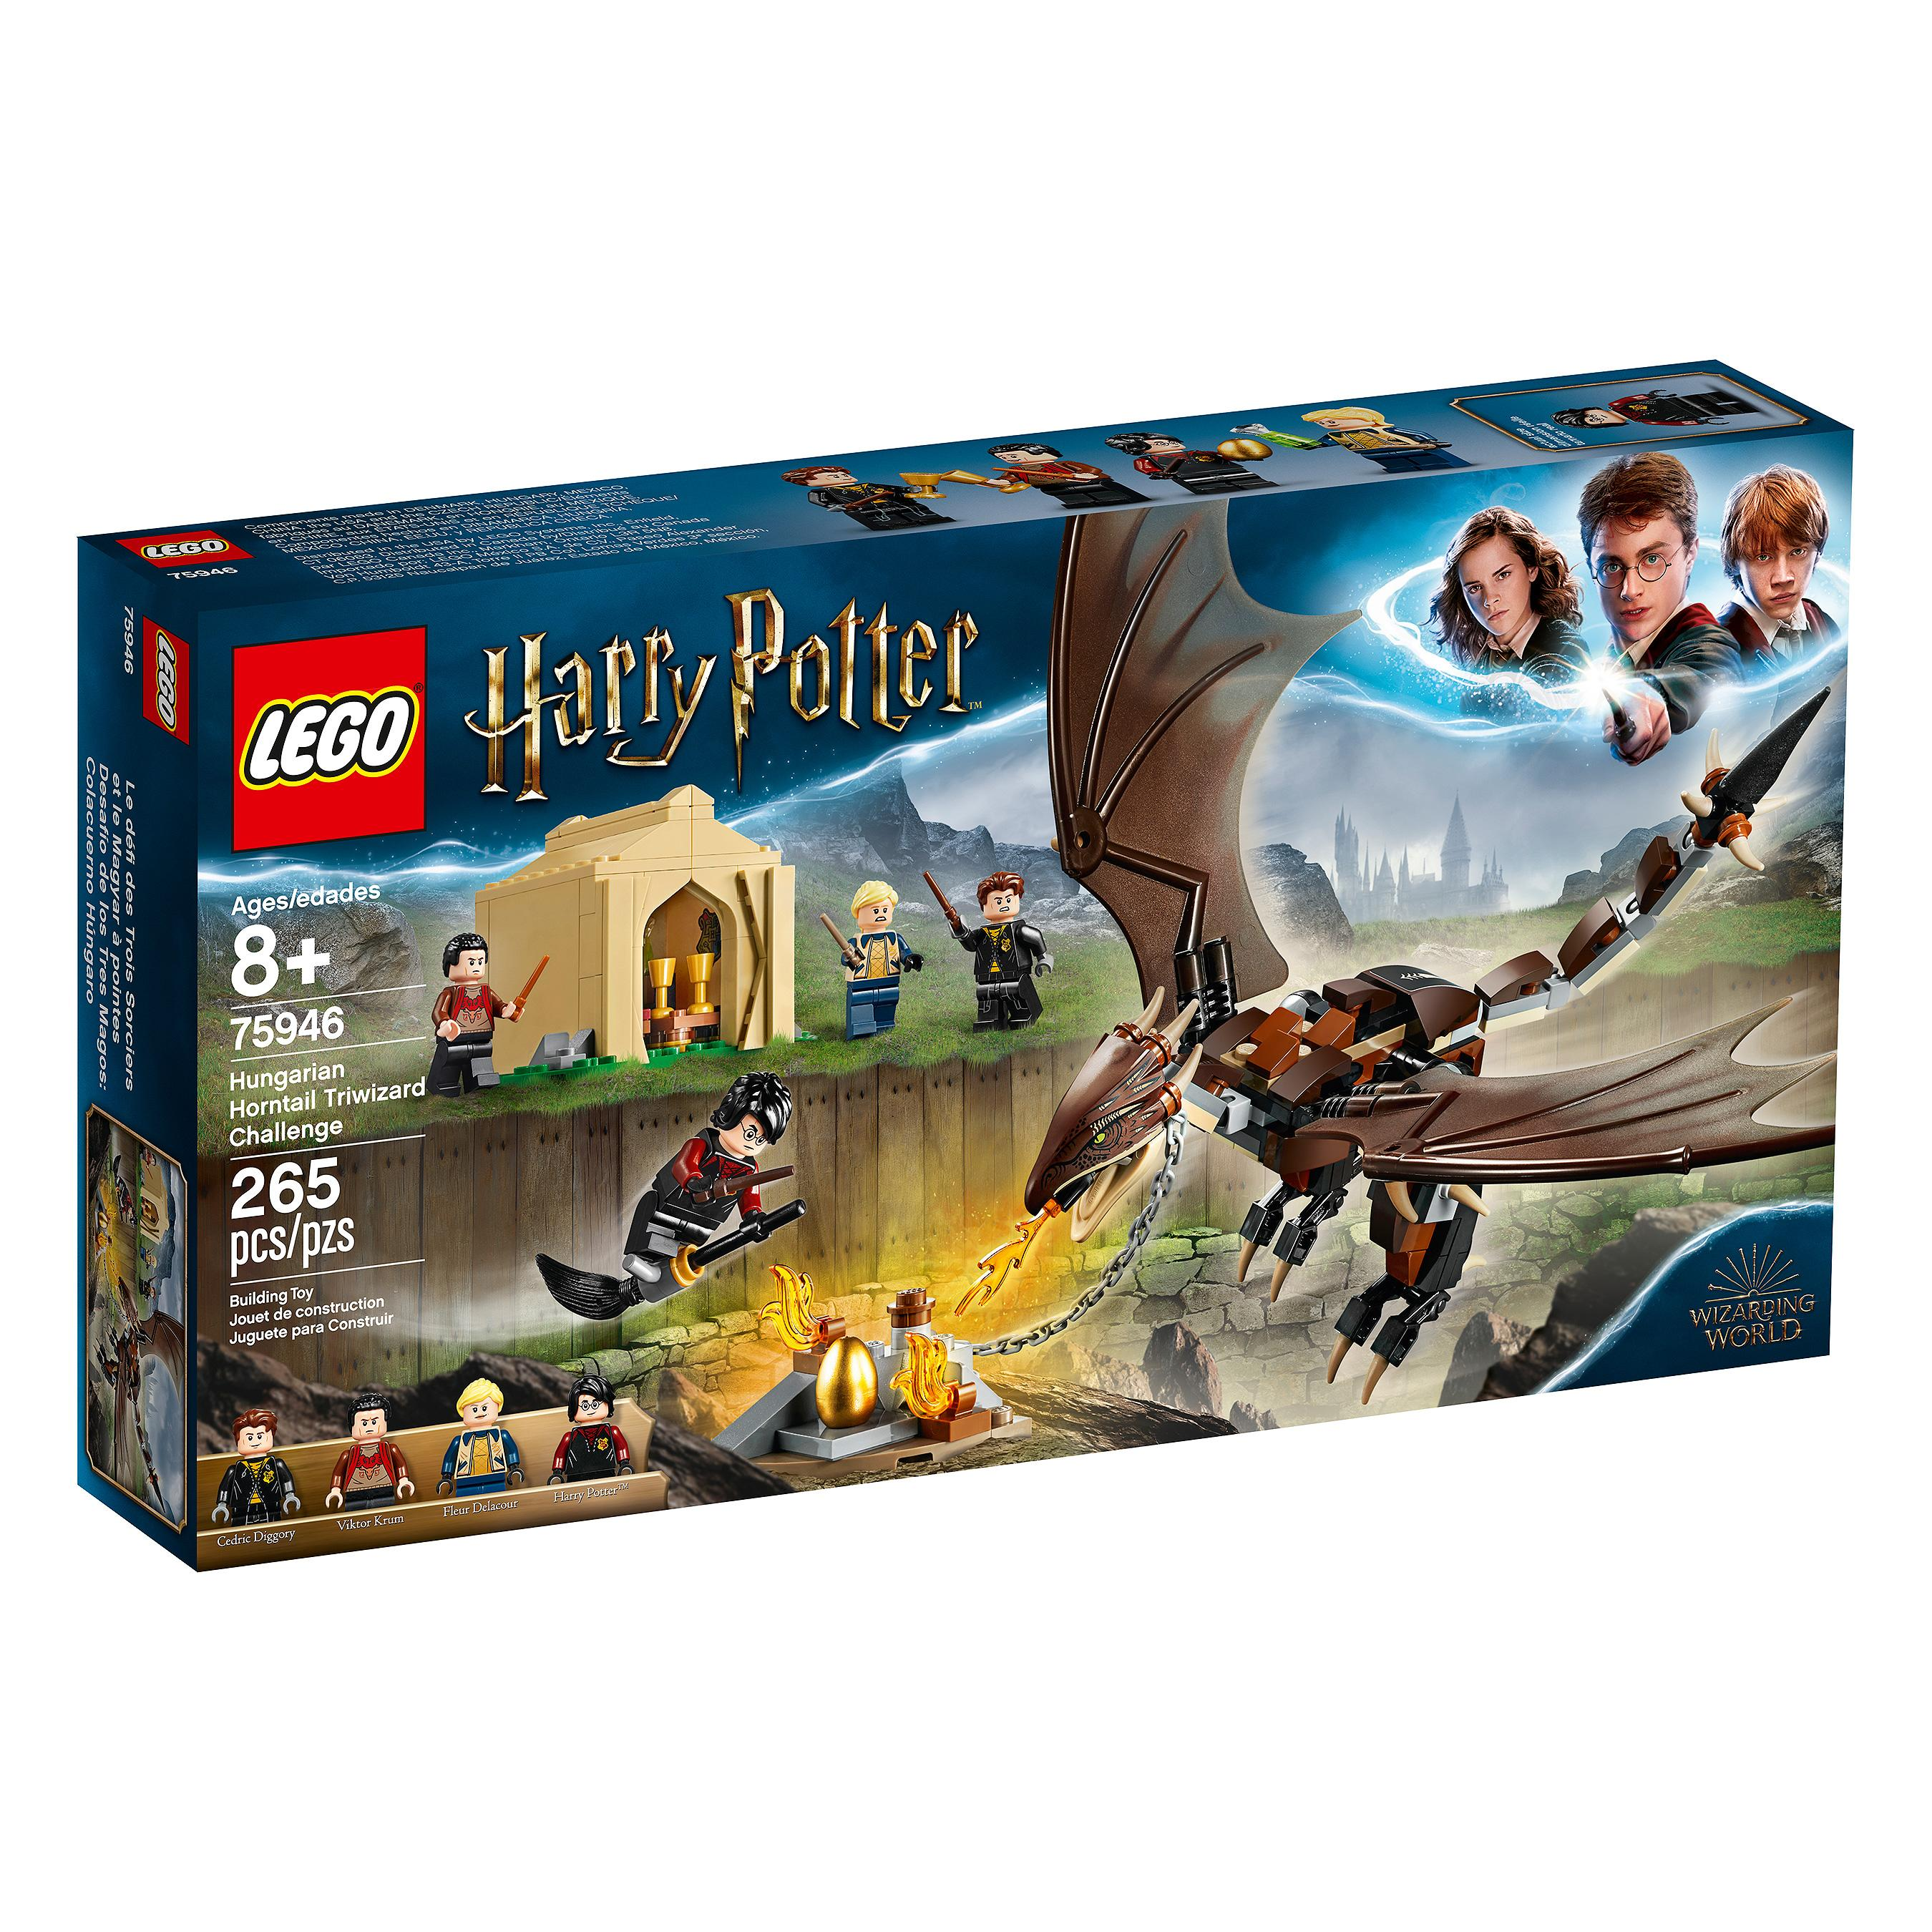 Calendario 2020 Maxim.New Harry Potter Lego Sets Go Back To Prisoner Of Azkaban